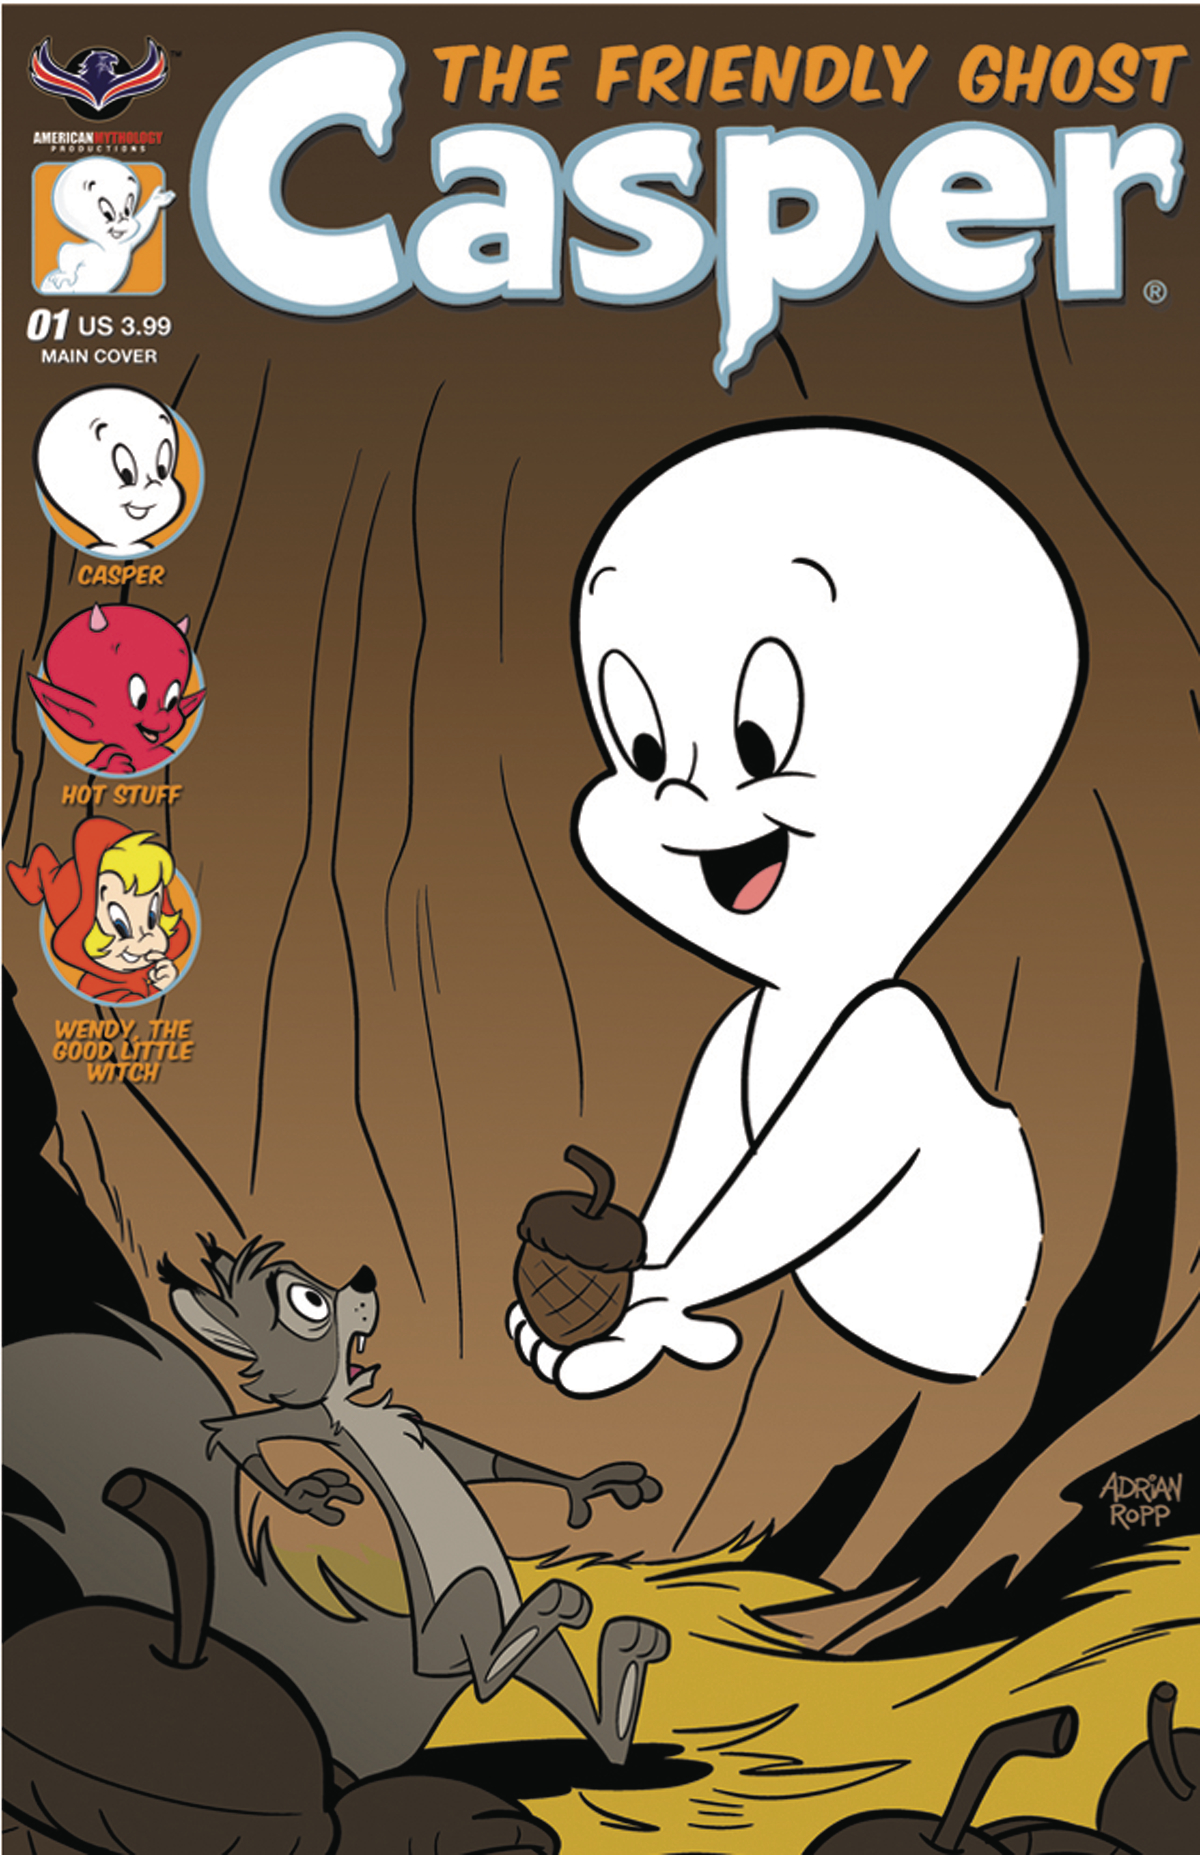 CASPER THE FRIENDLY GHOST #1 ROPP CVR